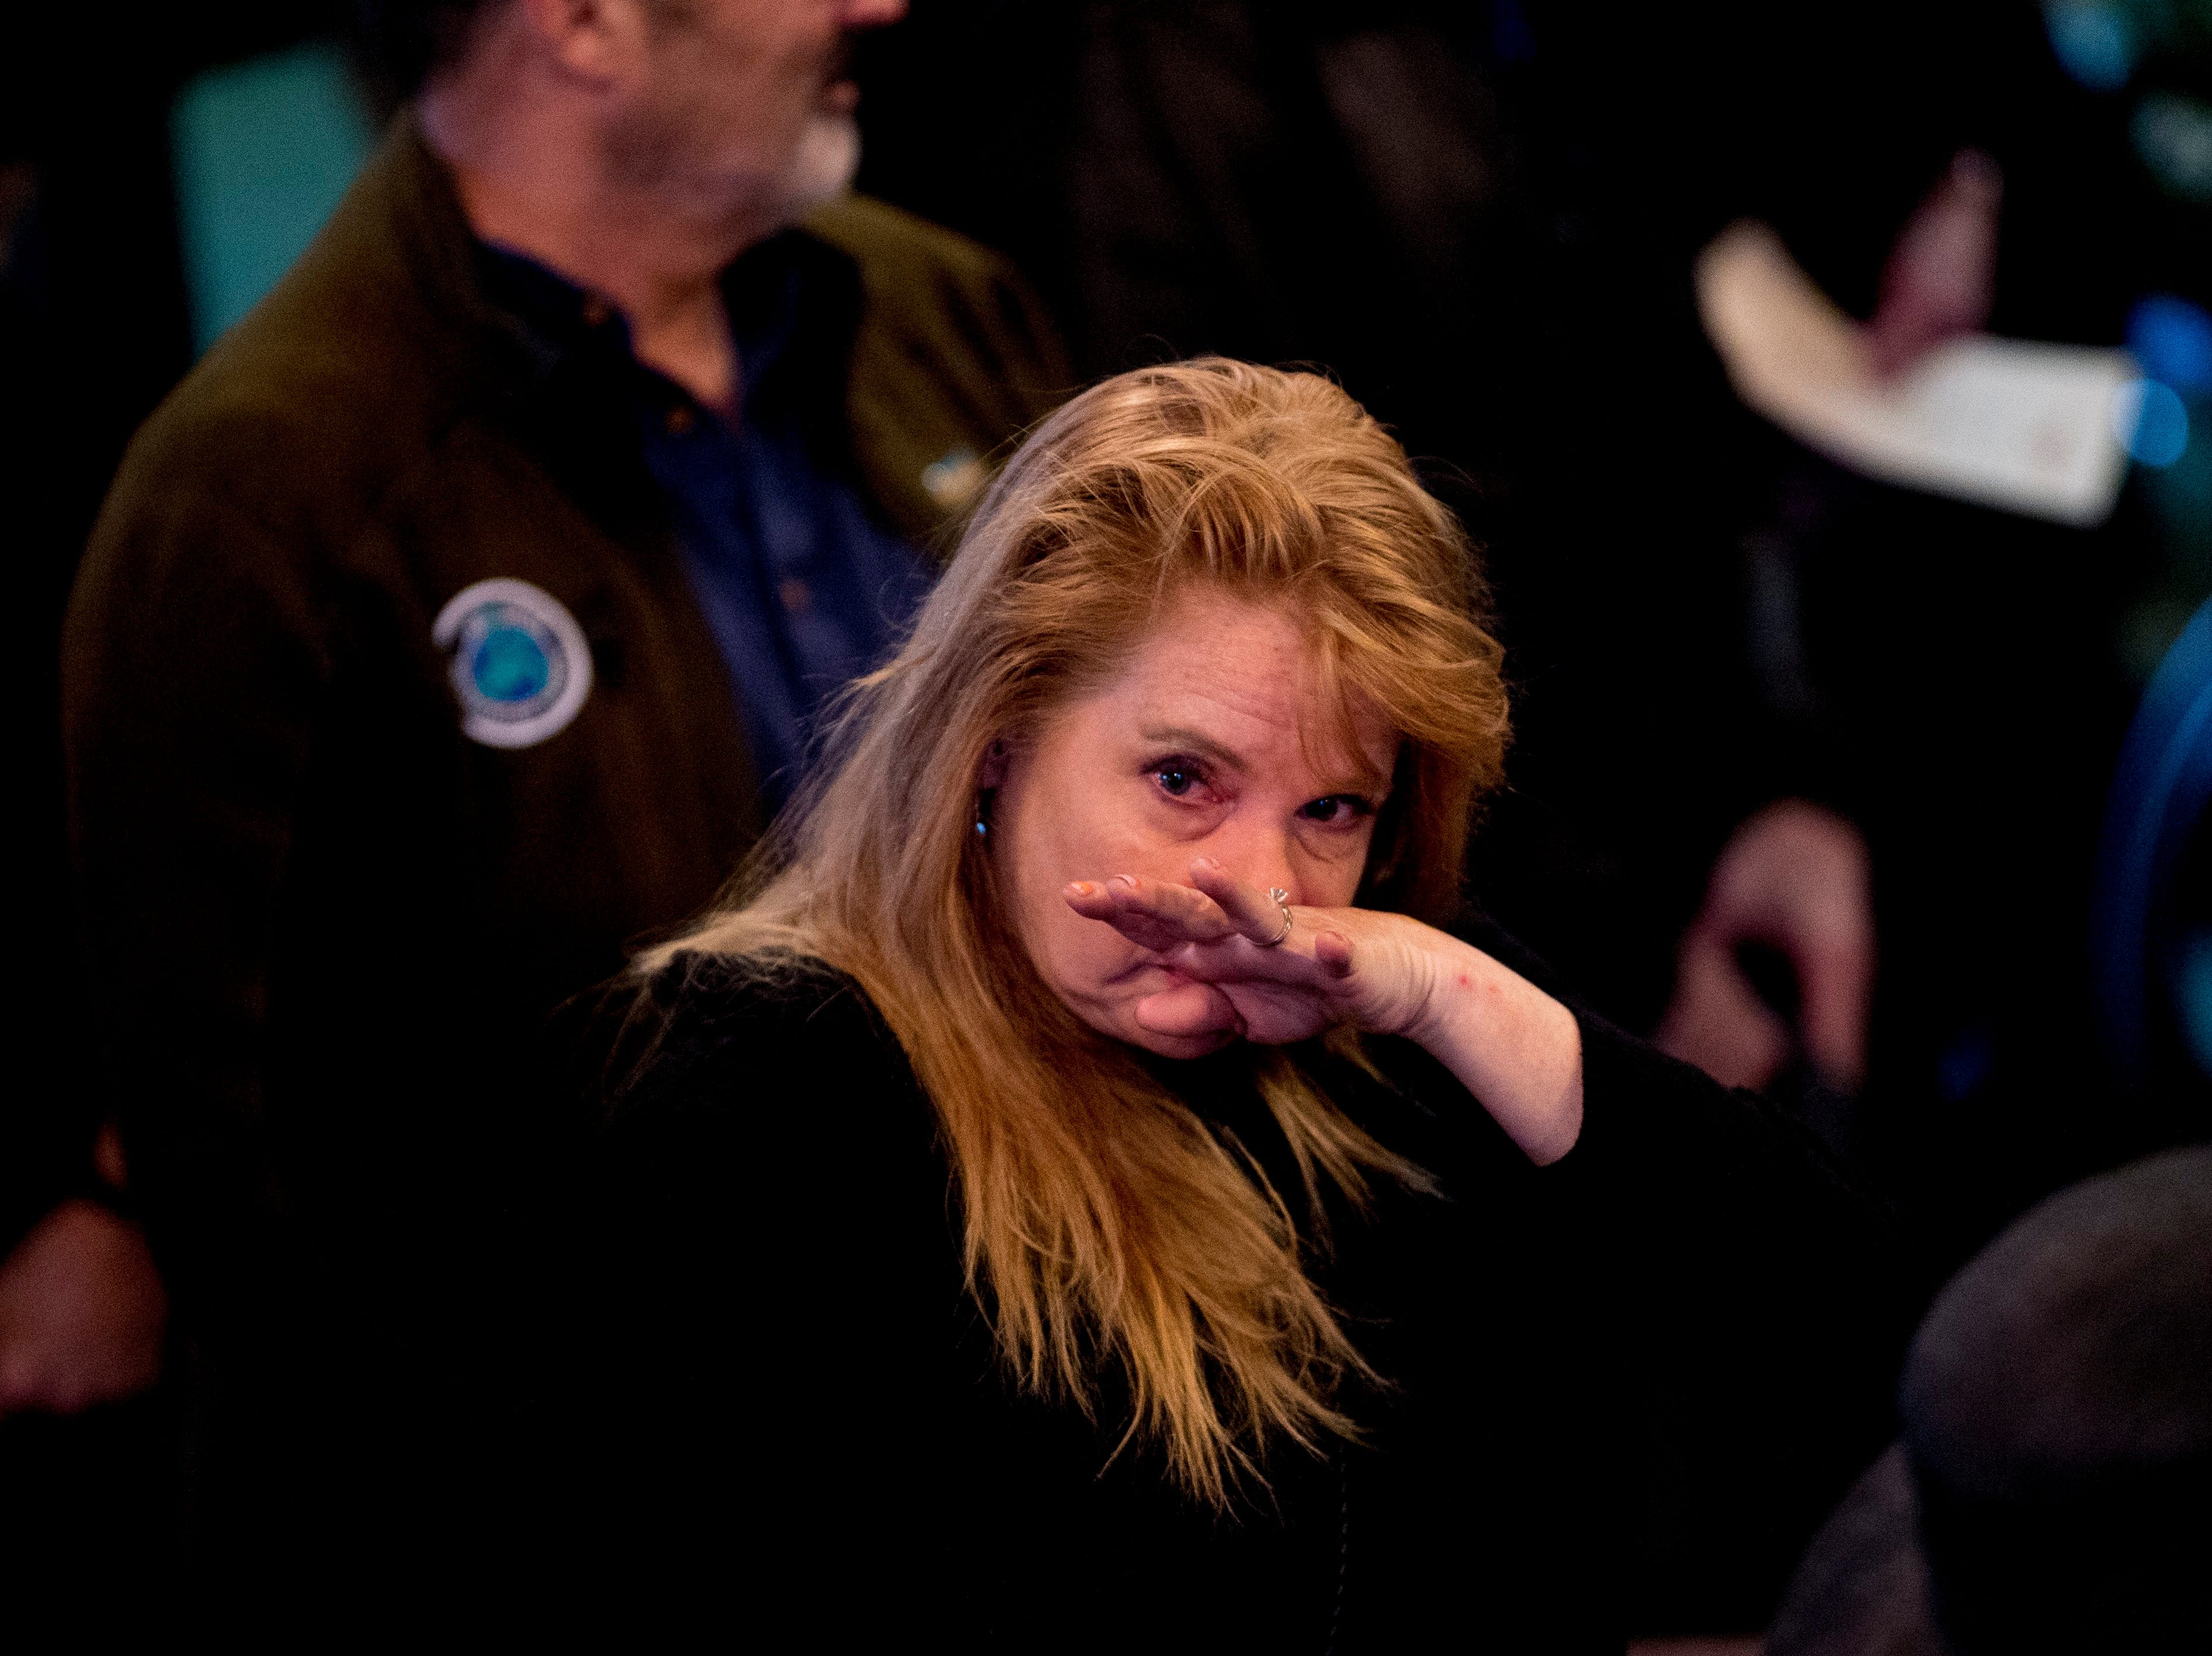 An attendee wipes away tears during a funeral service for Rosemary Mariner, the US Navy's first female fighter pilot, at Norris United Methodist Church in Norris, Tennessee on Saturday, February 2, 2019. Mariner died January 24th of cancer.